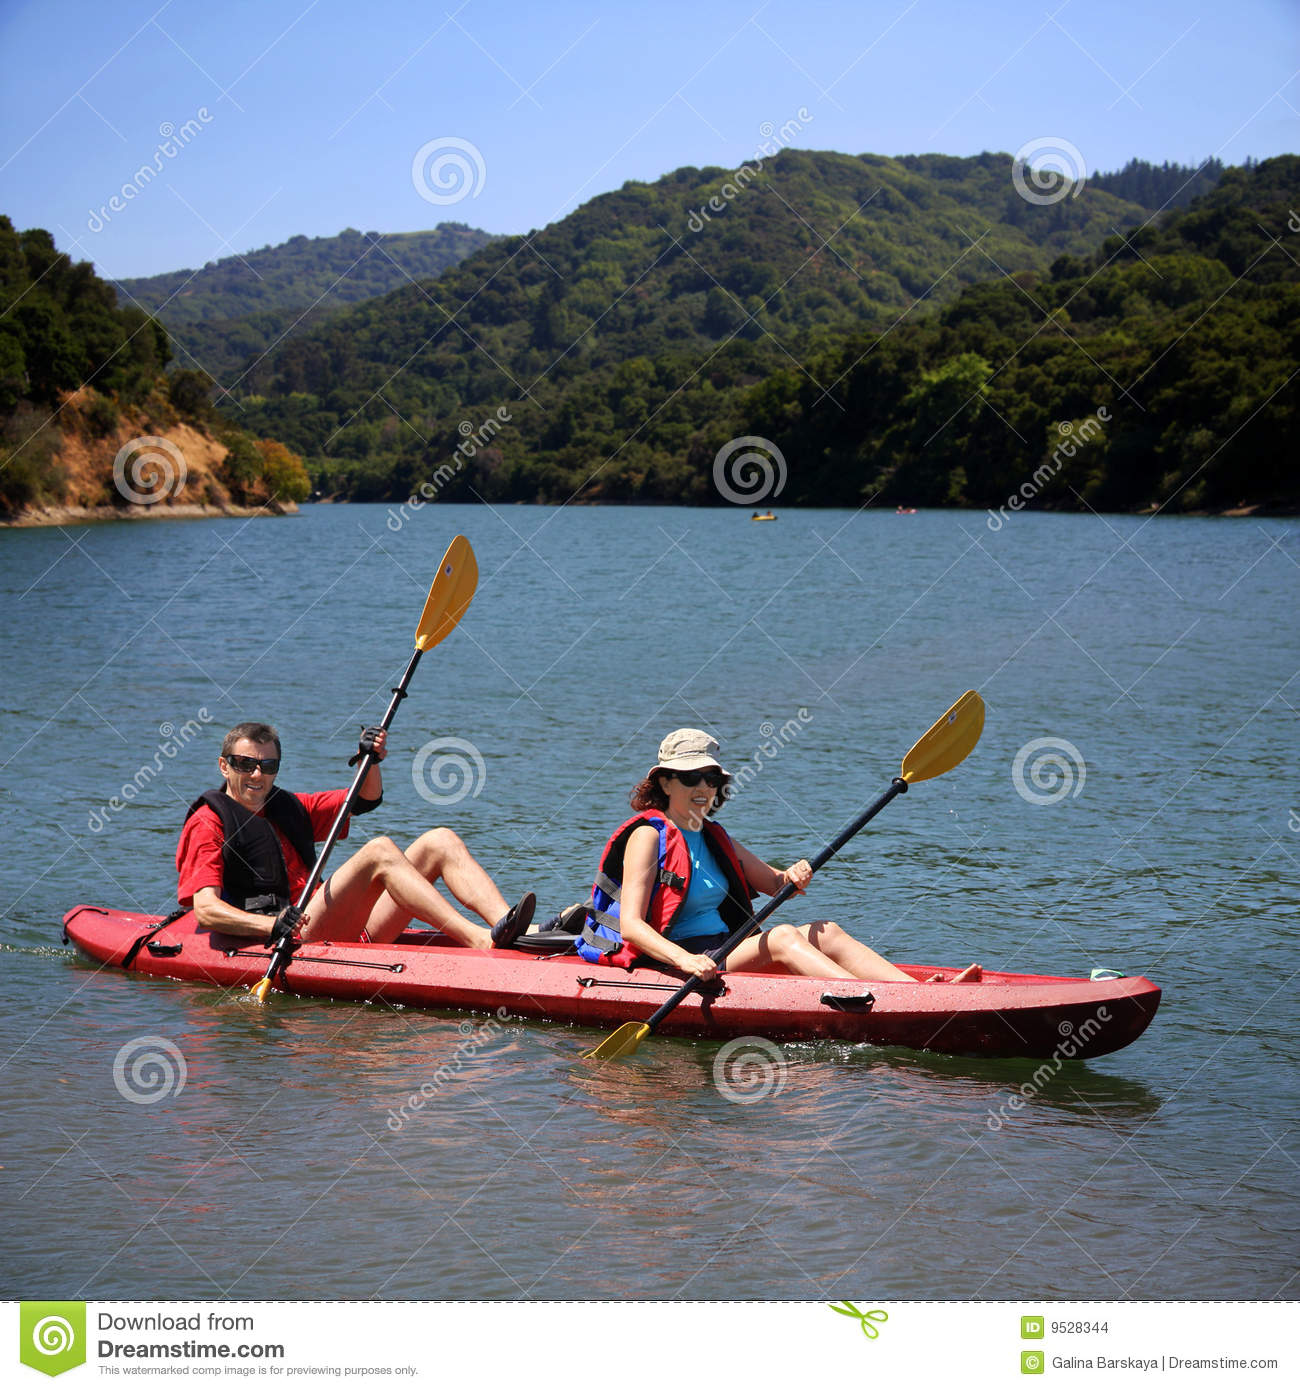 Couples kayaking